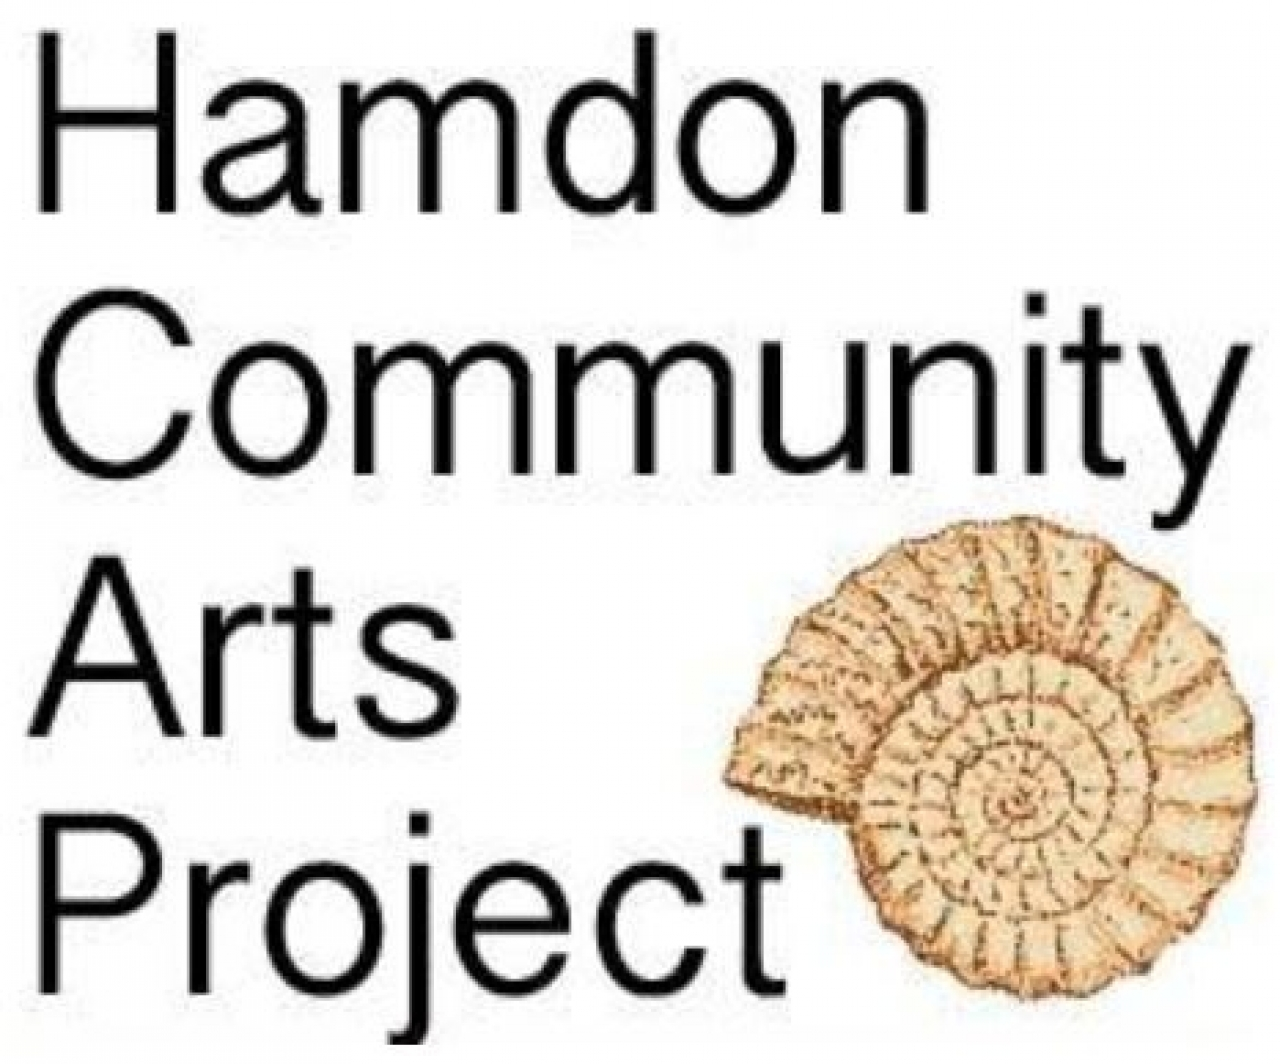 >Hamdon Community Arts Project